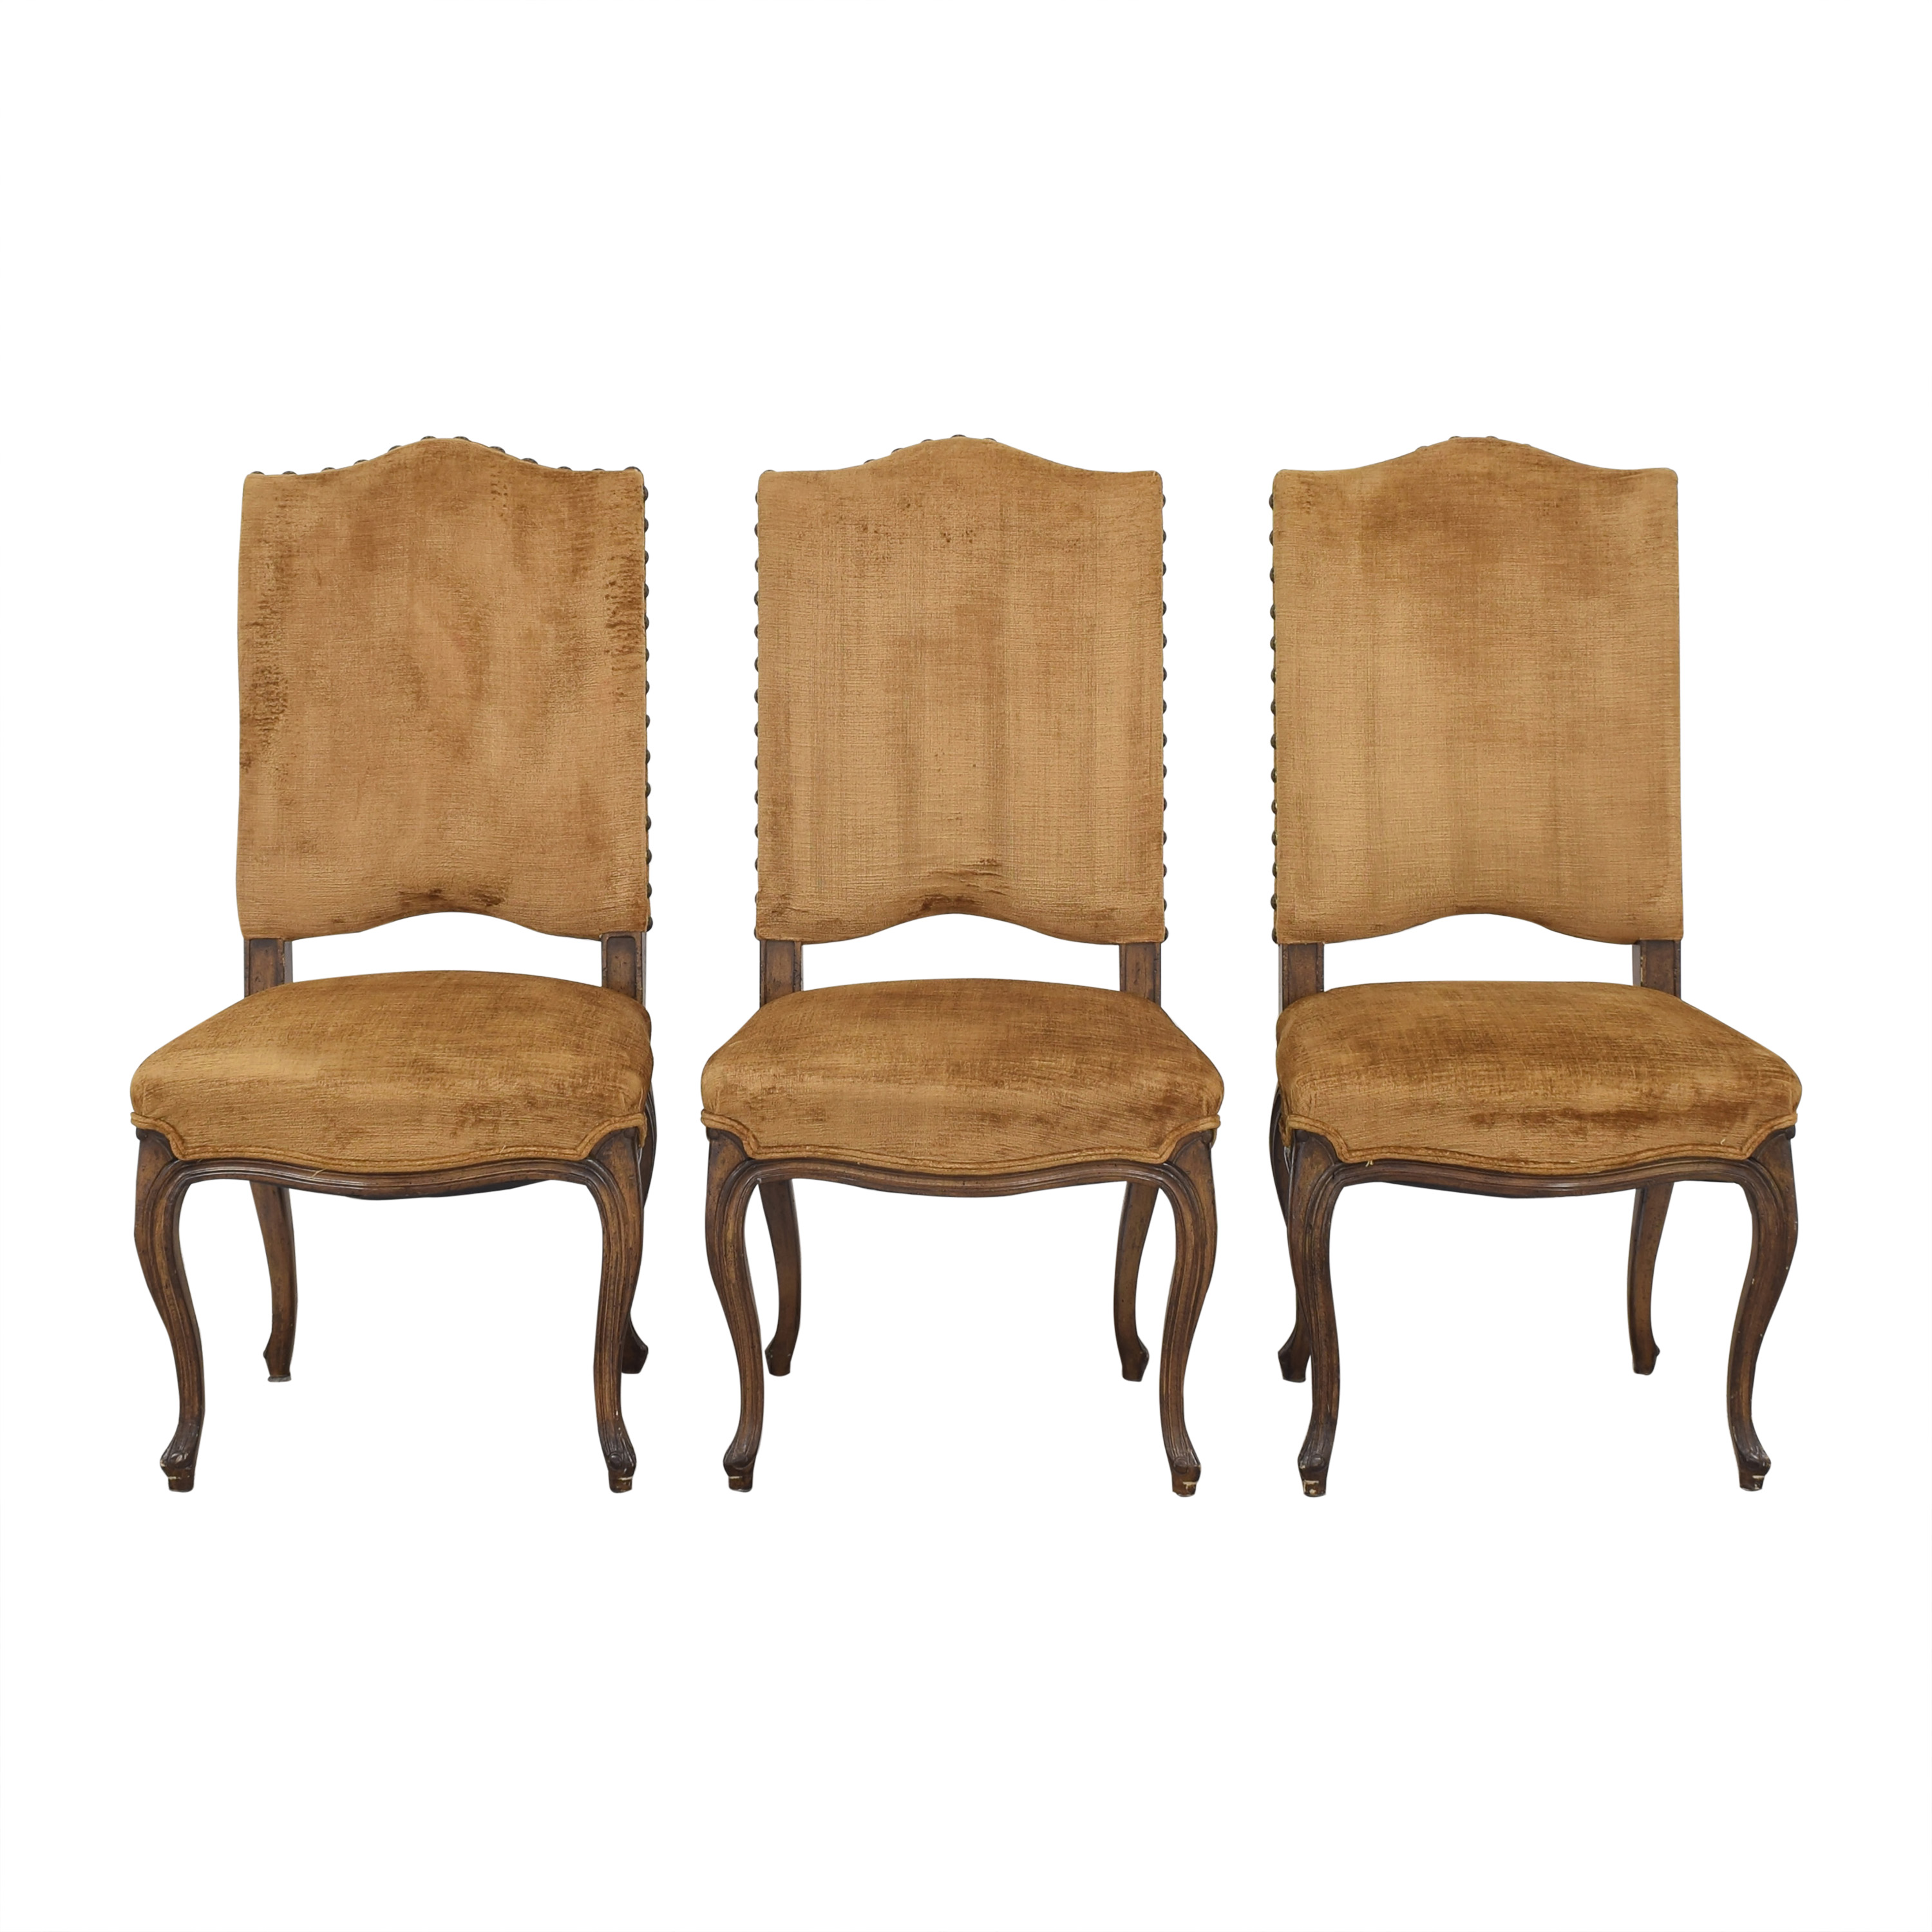 Upholstered Nail Head Dining Chairs sale